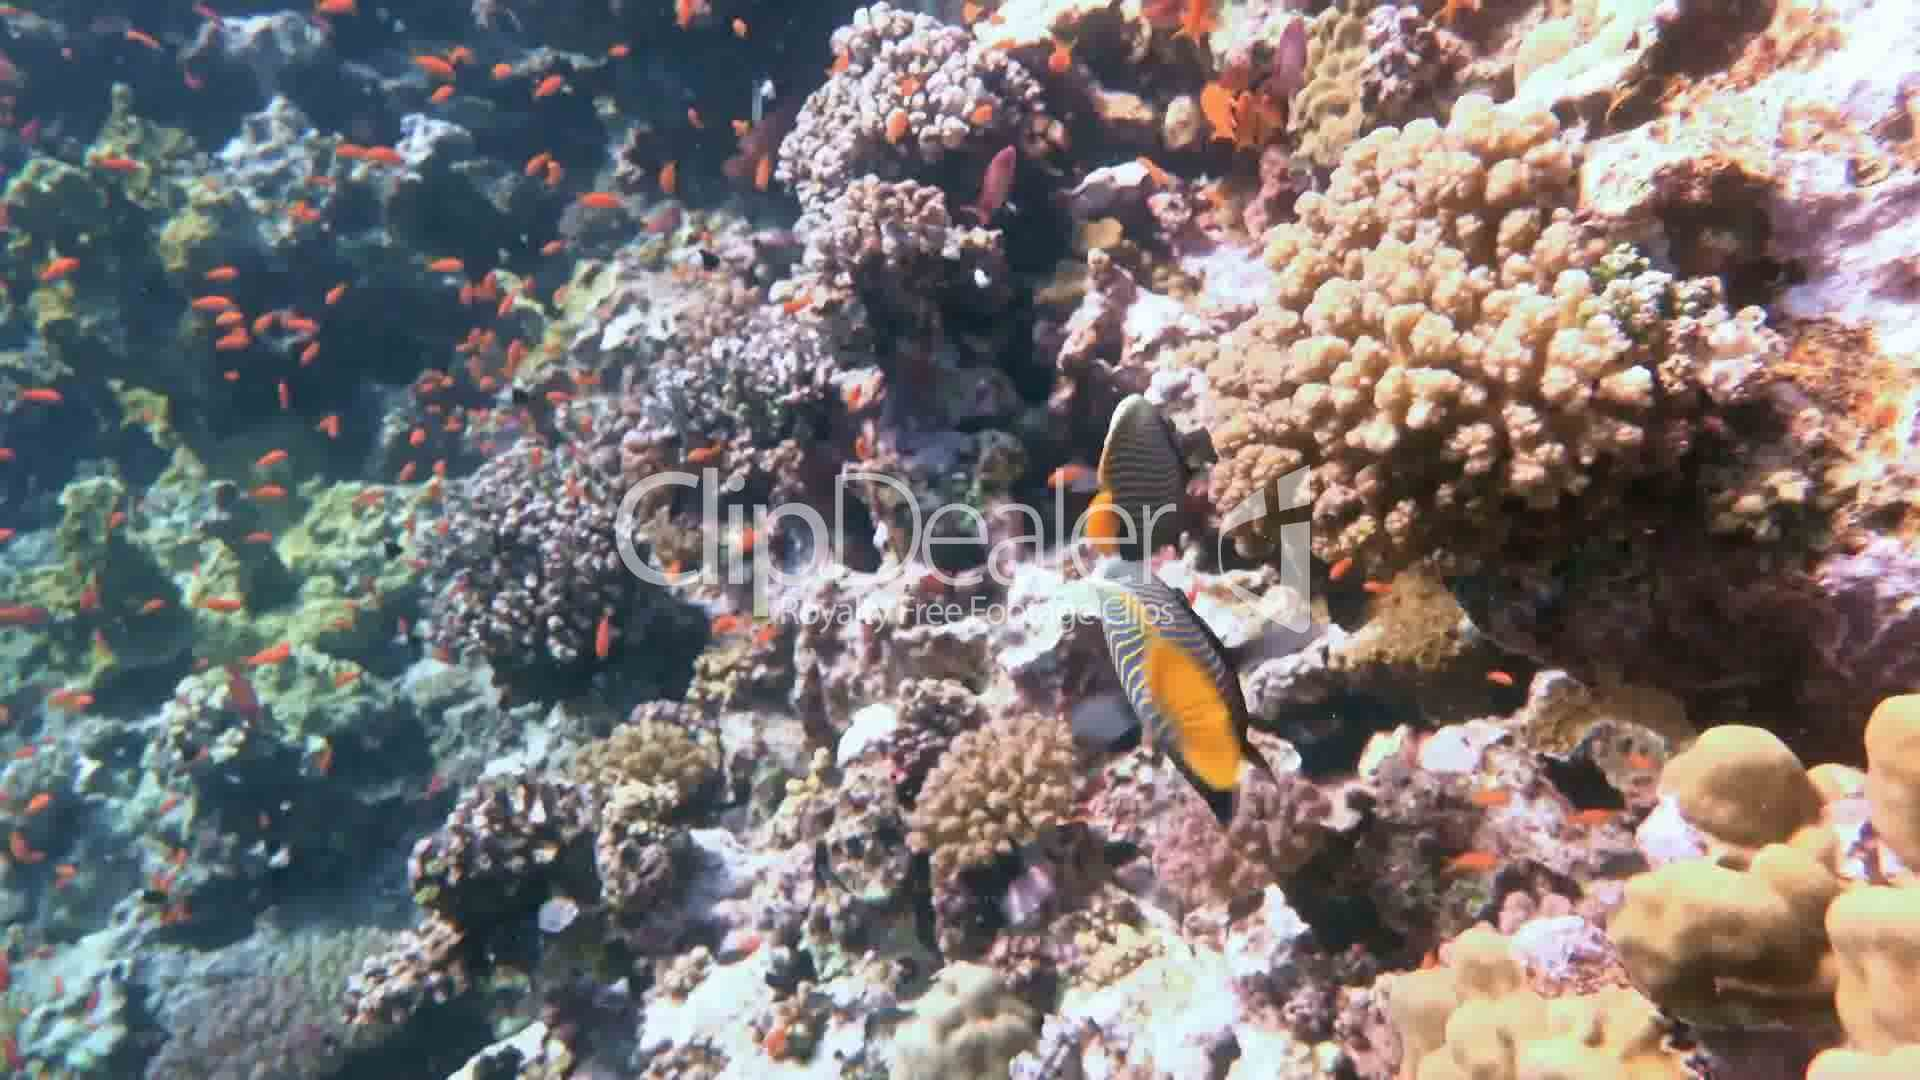 Couple emperor angelfish fish over the reef in the Red Sea